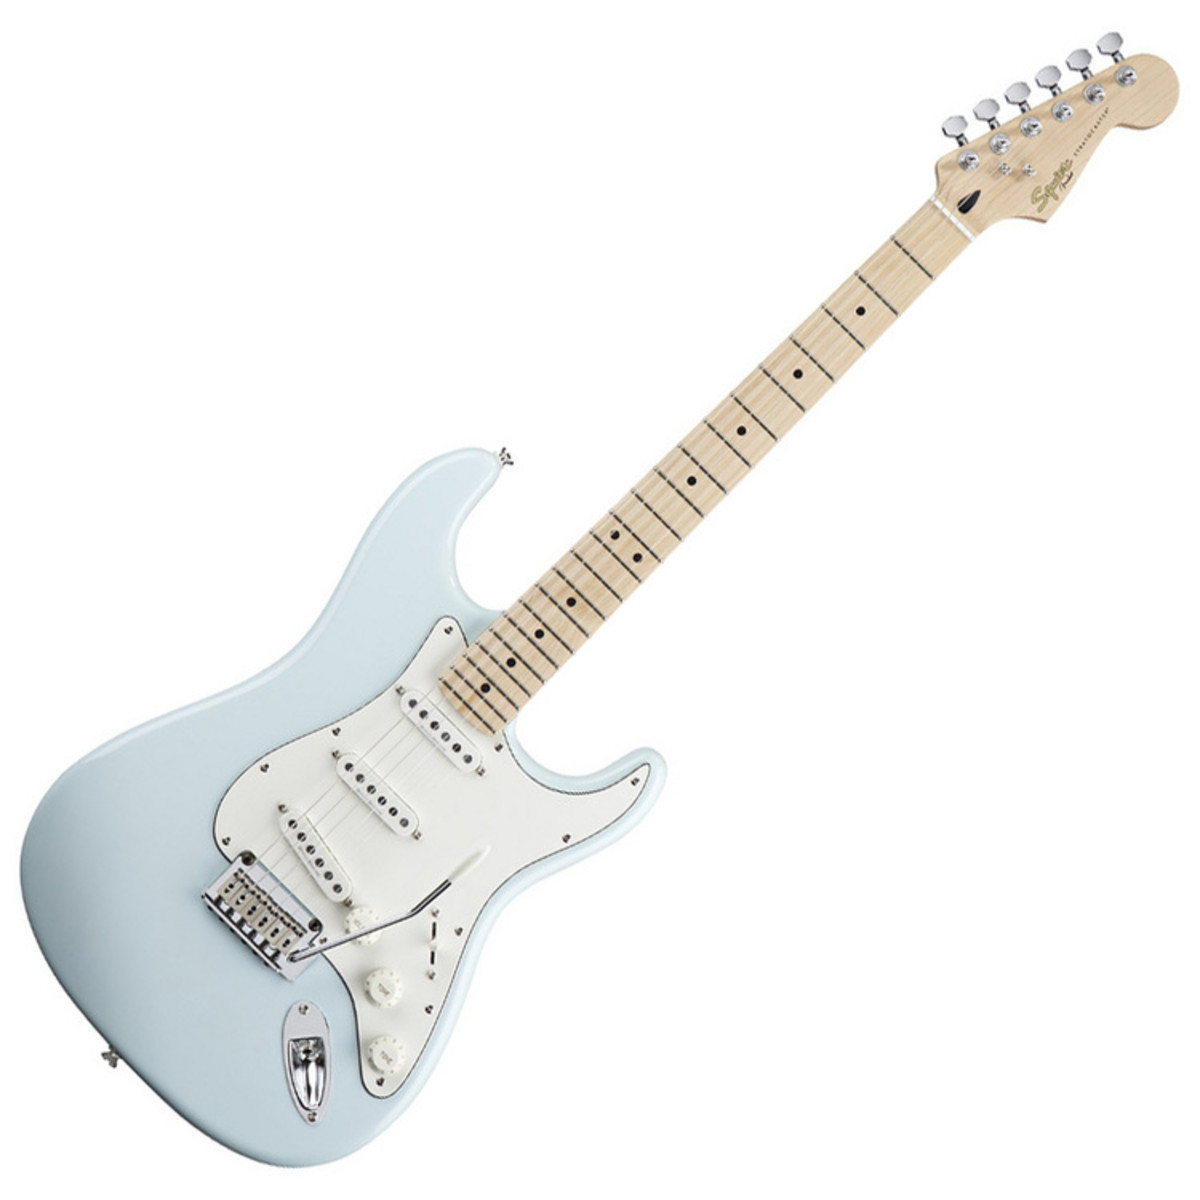 squier by fender deluxe stratocaster elec guitar mn db ex demo at gear4music. Black Bedroom Furniture Sets. Home Design Ideas